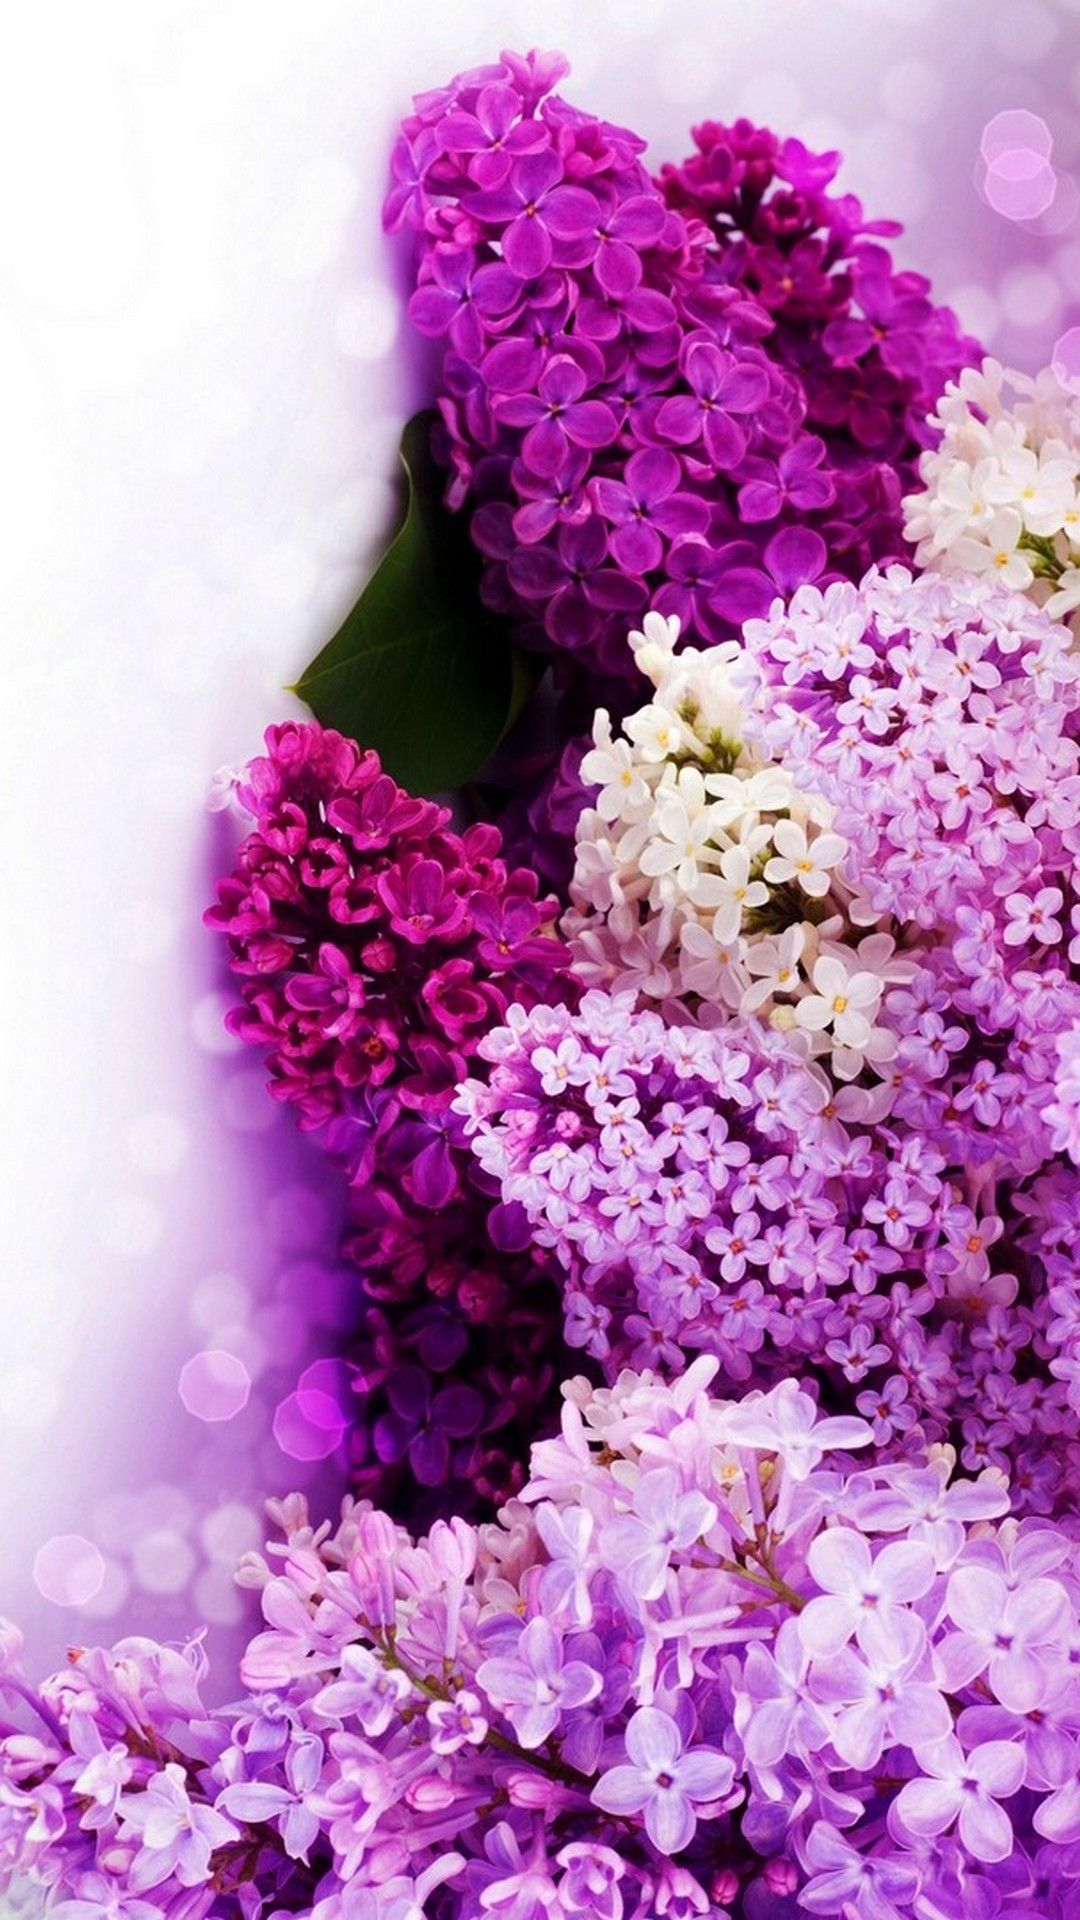 Purple Flowers Background For Android Best Hd Wallpapers Purple Flowers Wallpaper Purple Flower Background Flower Backgrounds